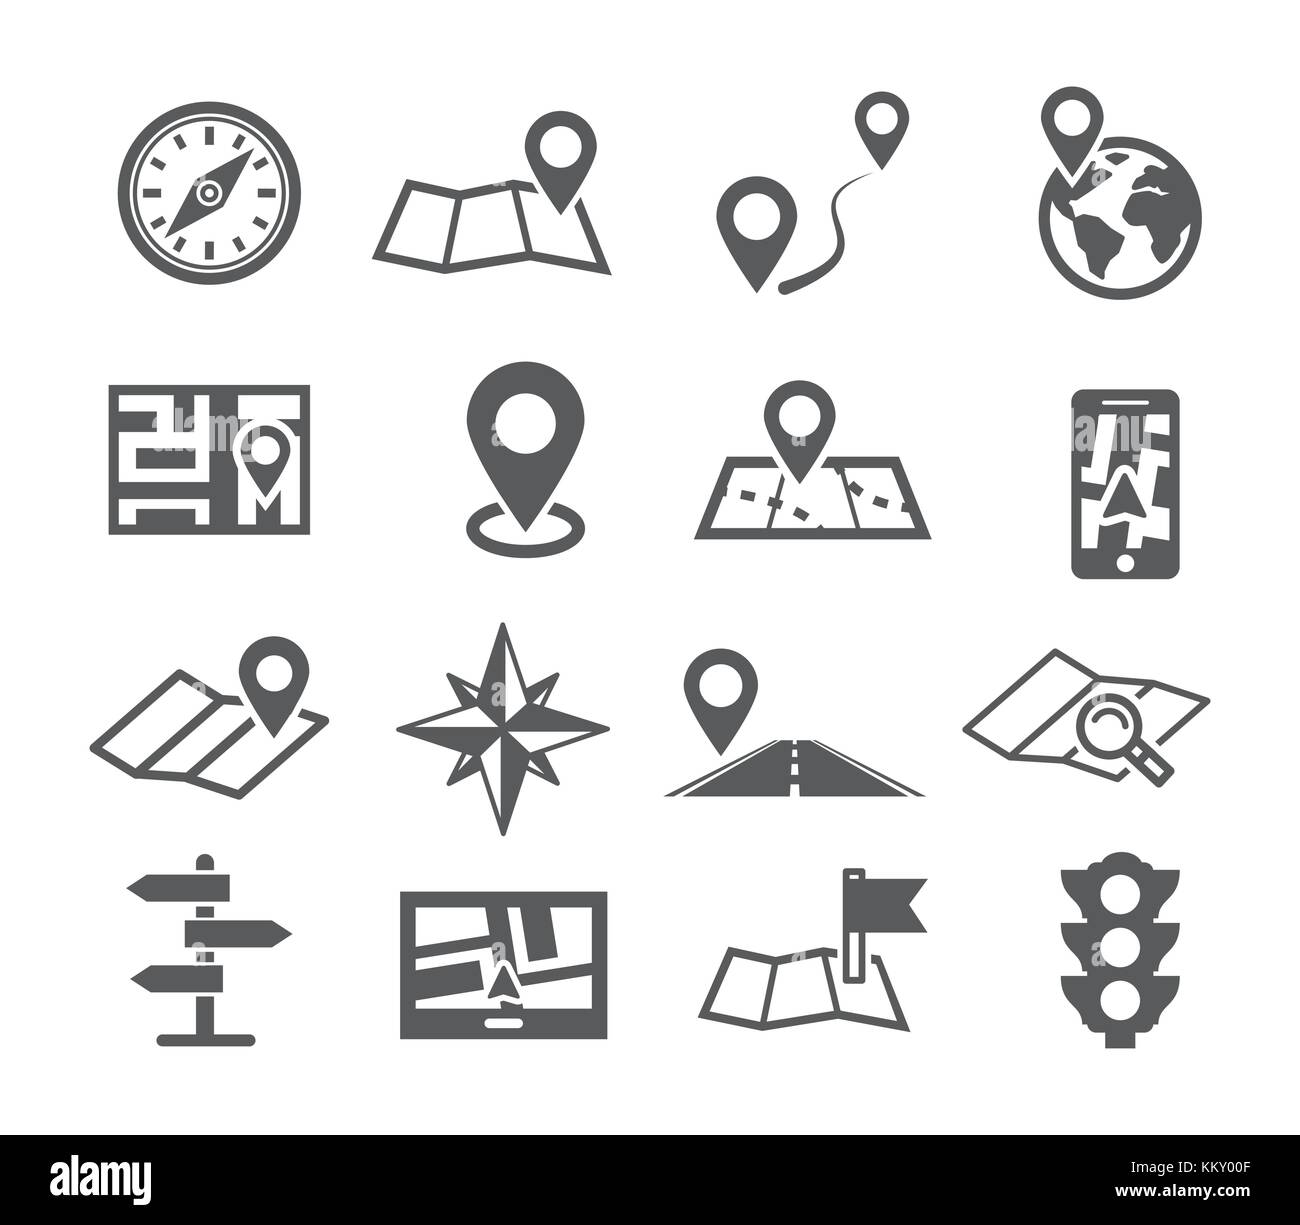 Navigation and Map icons Stock Vector